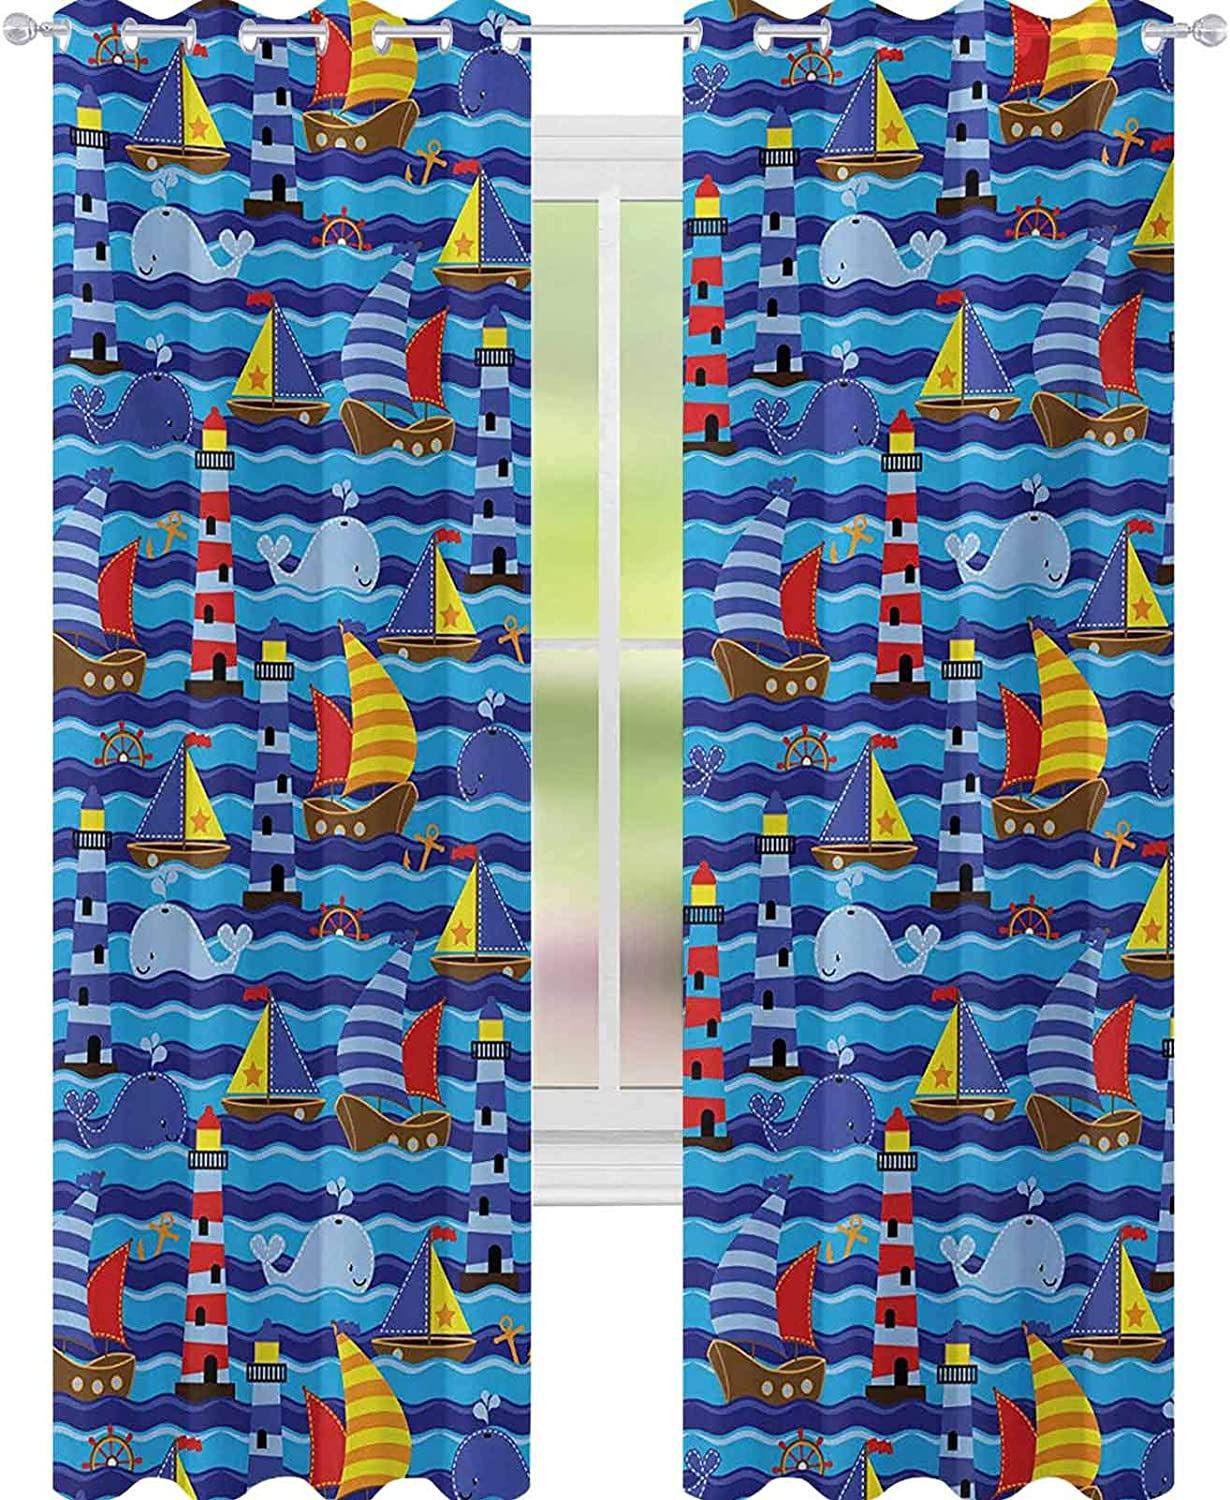 YUAZHOQI Nautical Blackout Curtains for Bedroom Nautical Themed Wavy Ocean Boating Yacht Dolphin Compass Lighthouse Fish Decor Curtains 52